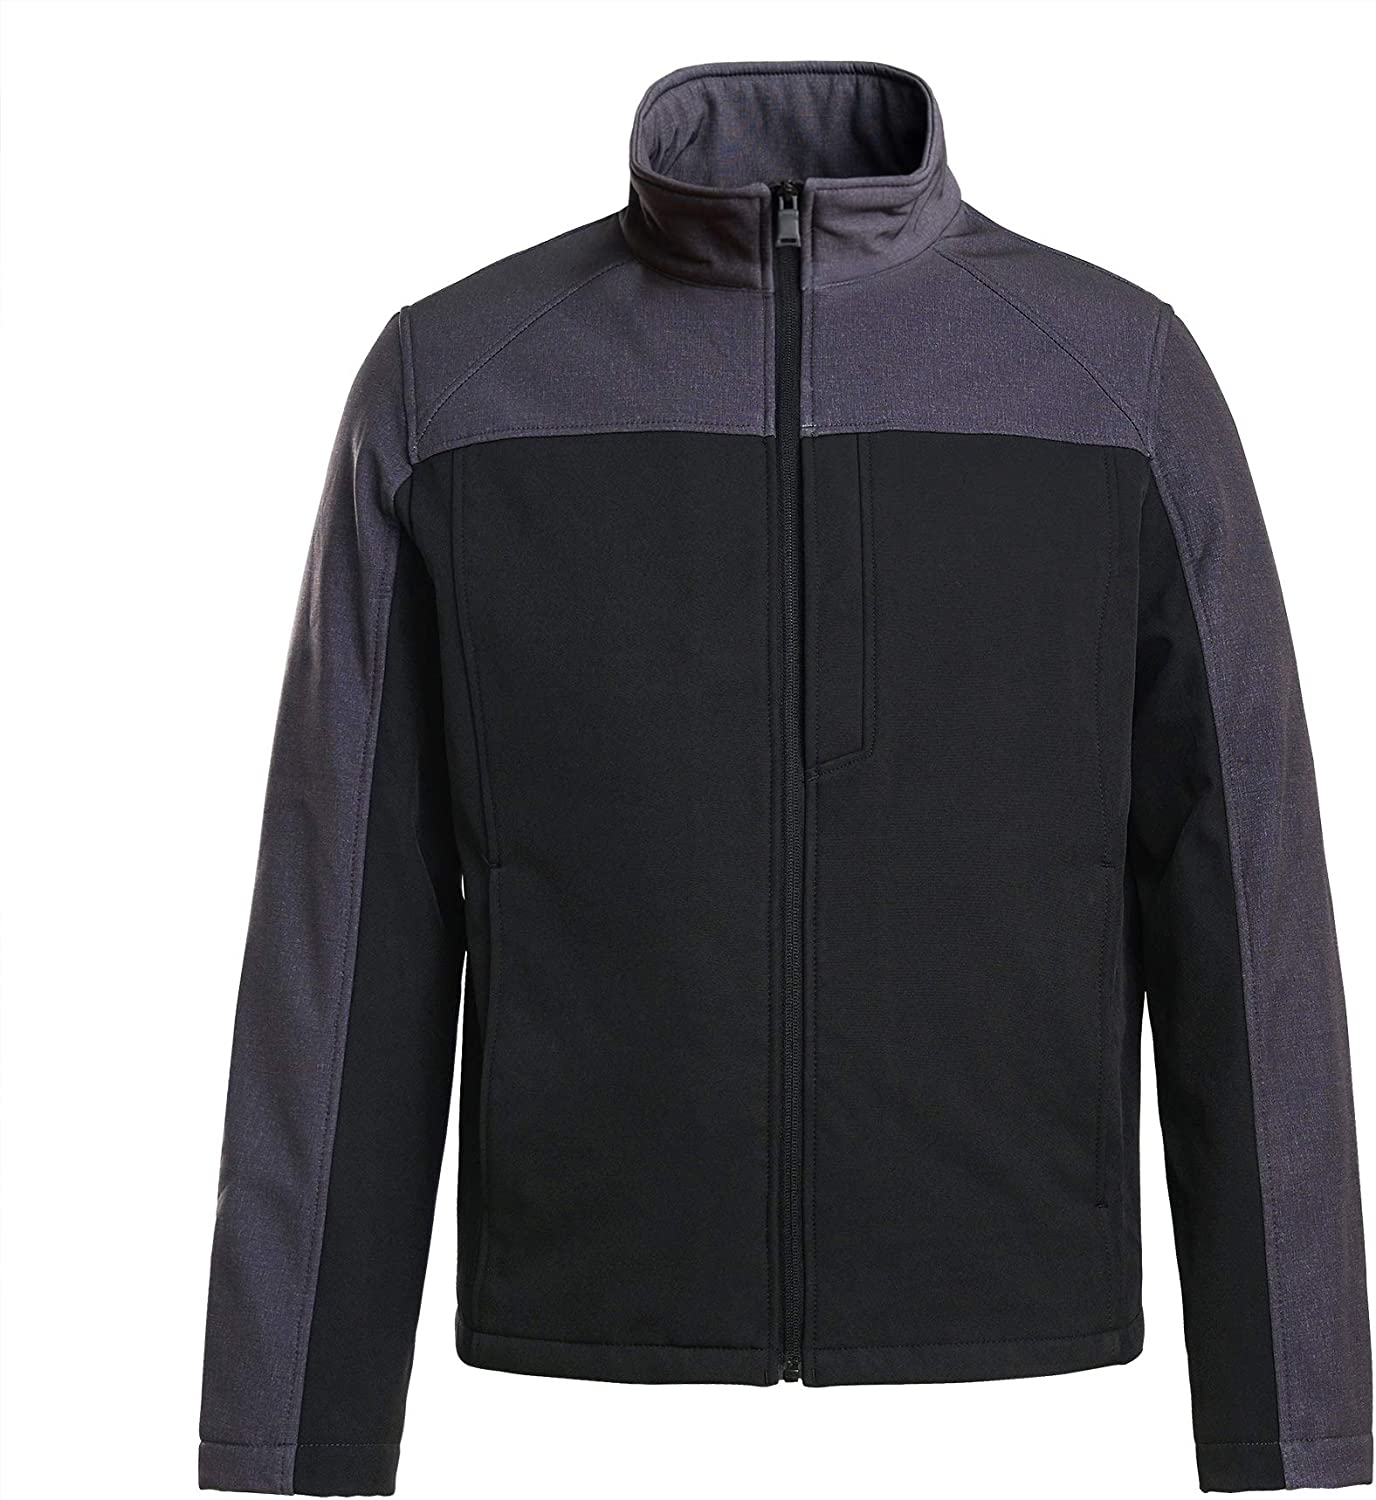 XPOSURZONE Men's Limited time cheap sale Water New York Mall Resistance 3-Layer Softshell J Colorblock